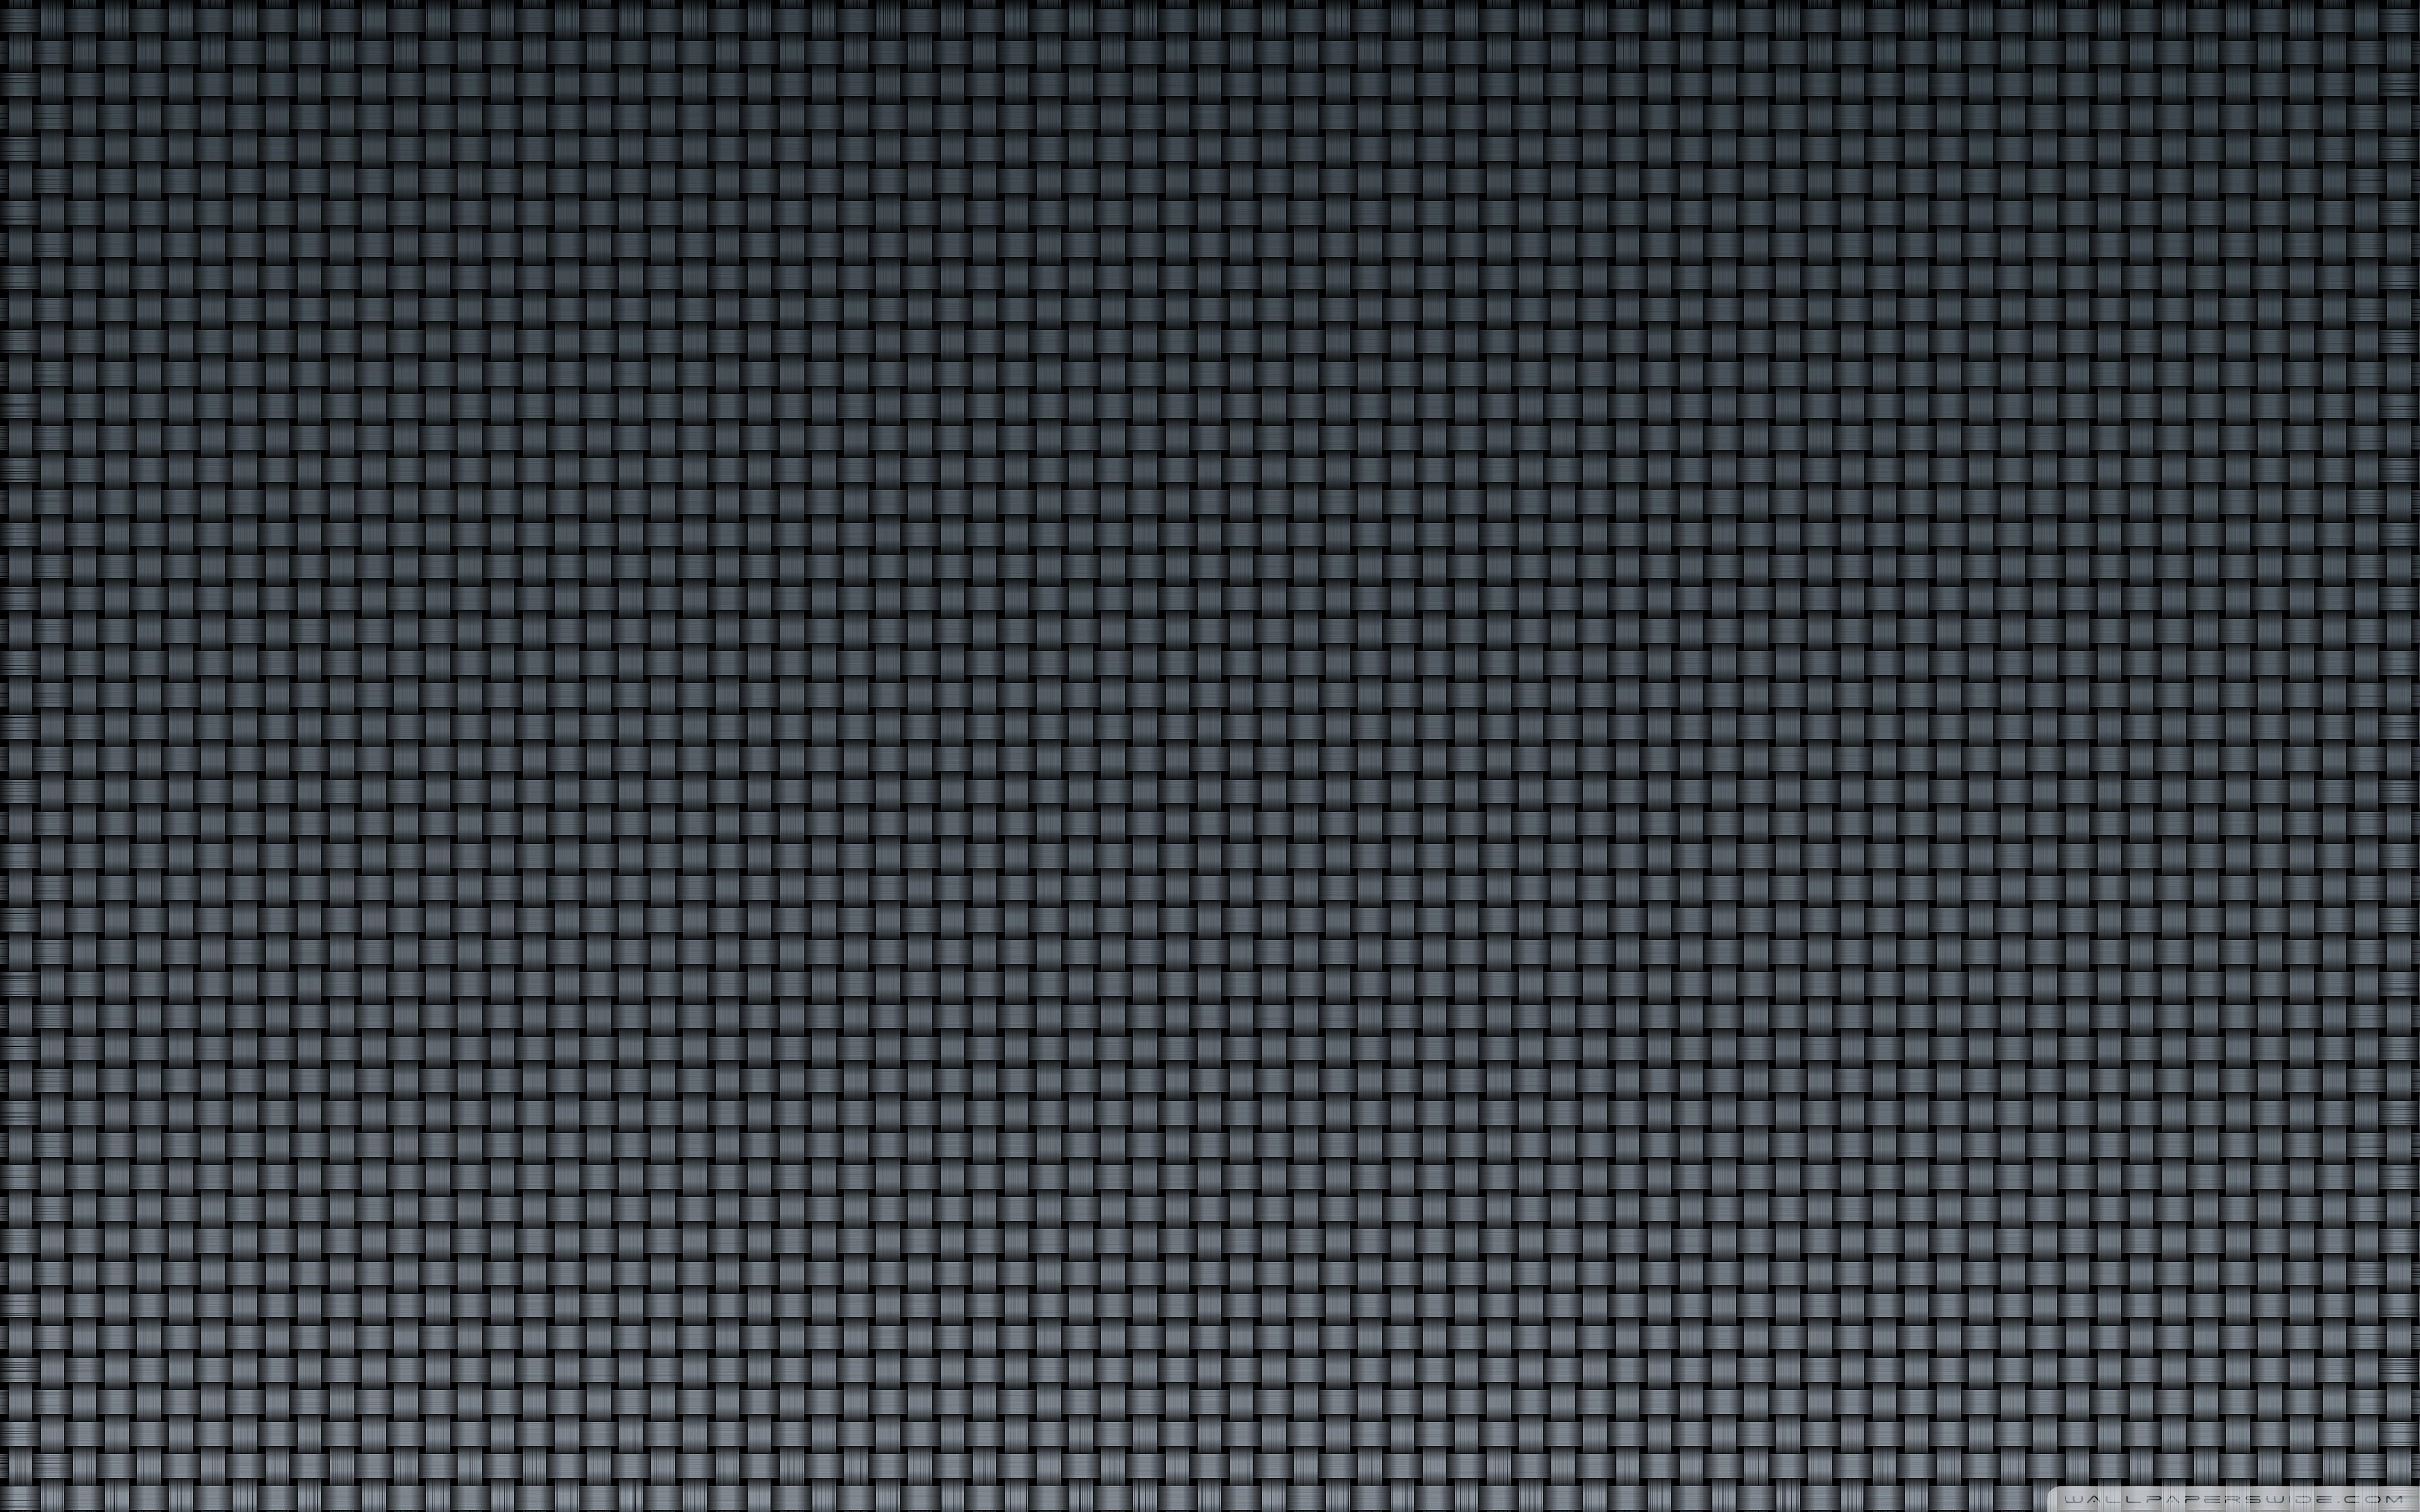 Gray Mesh 4K HD Desktop Wallpaper for 4K Ultra HD TV Dual 2560x1600